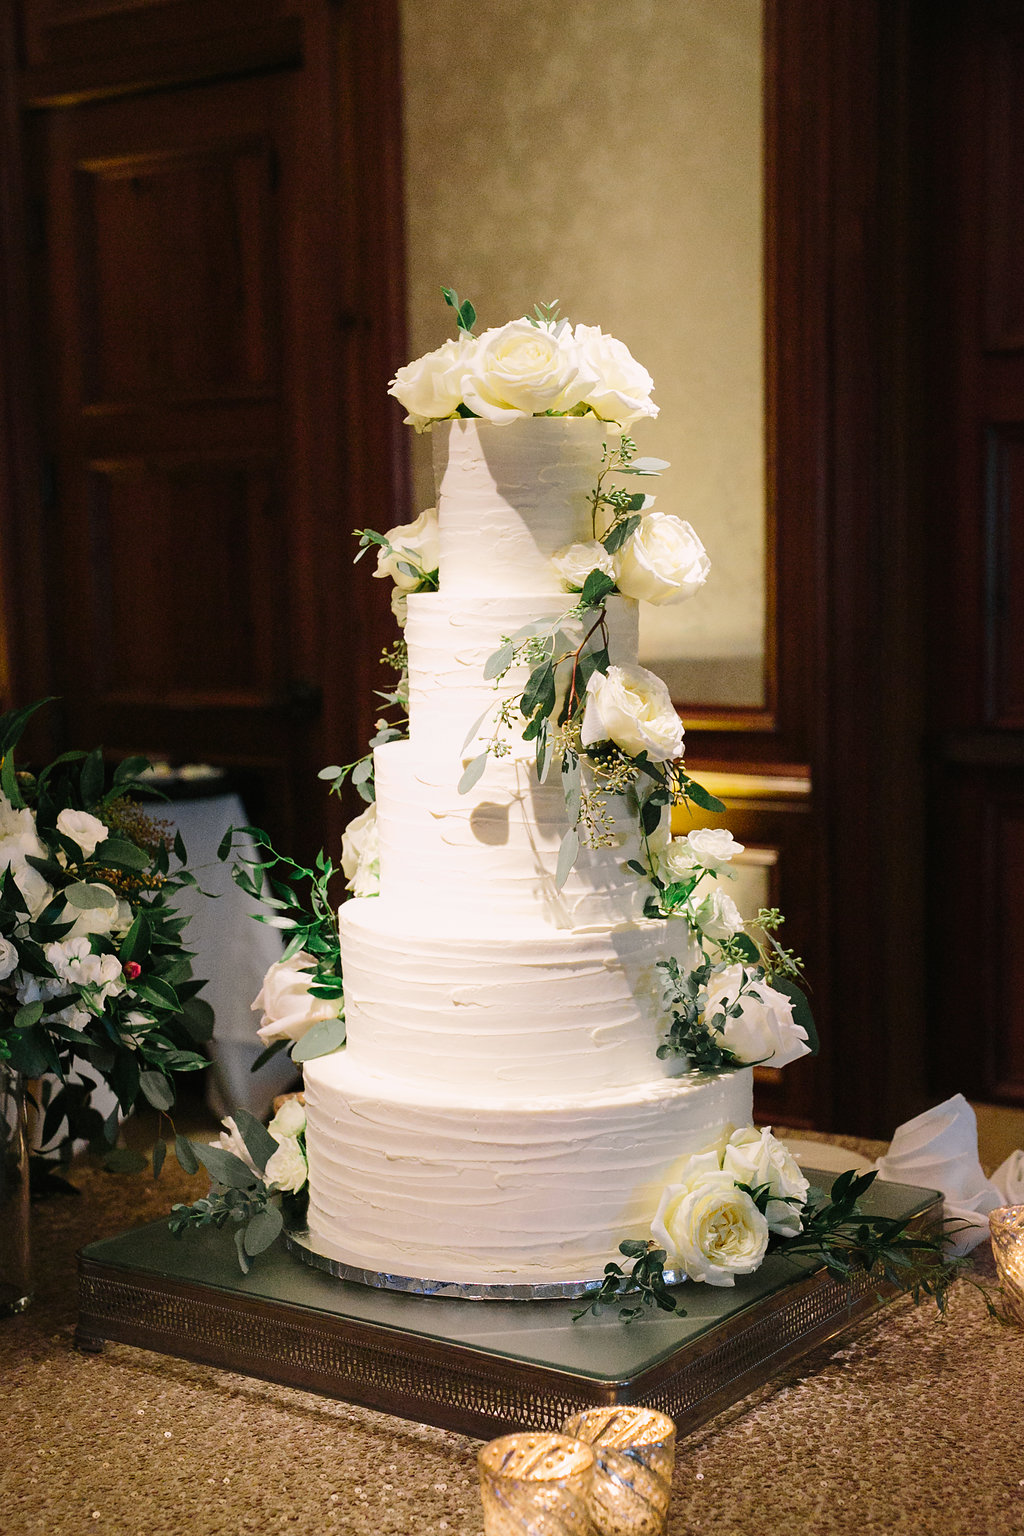 Tiered wedding cake for Hilton Head wedding at the Sea Pines Resort during Christmas. Photo Landon Jacob Photography